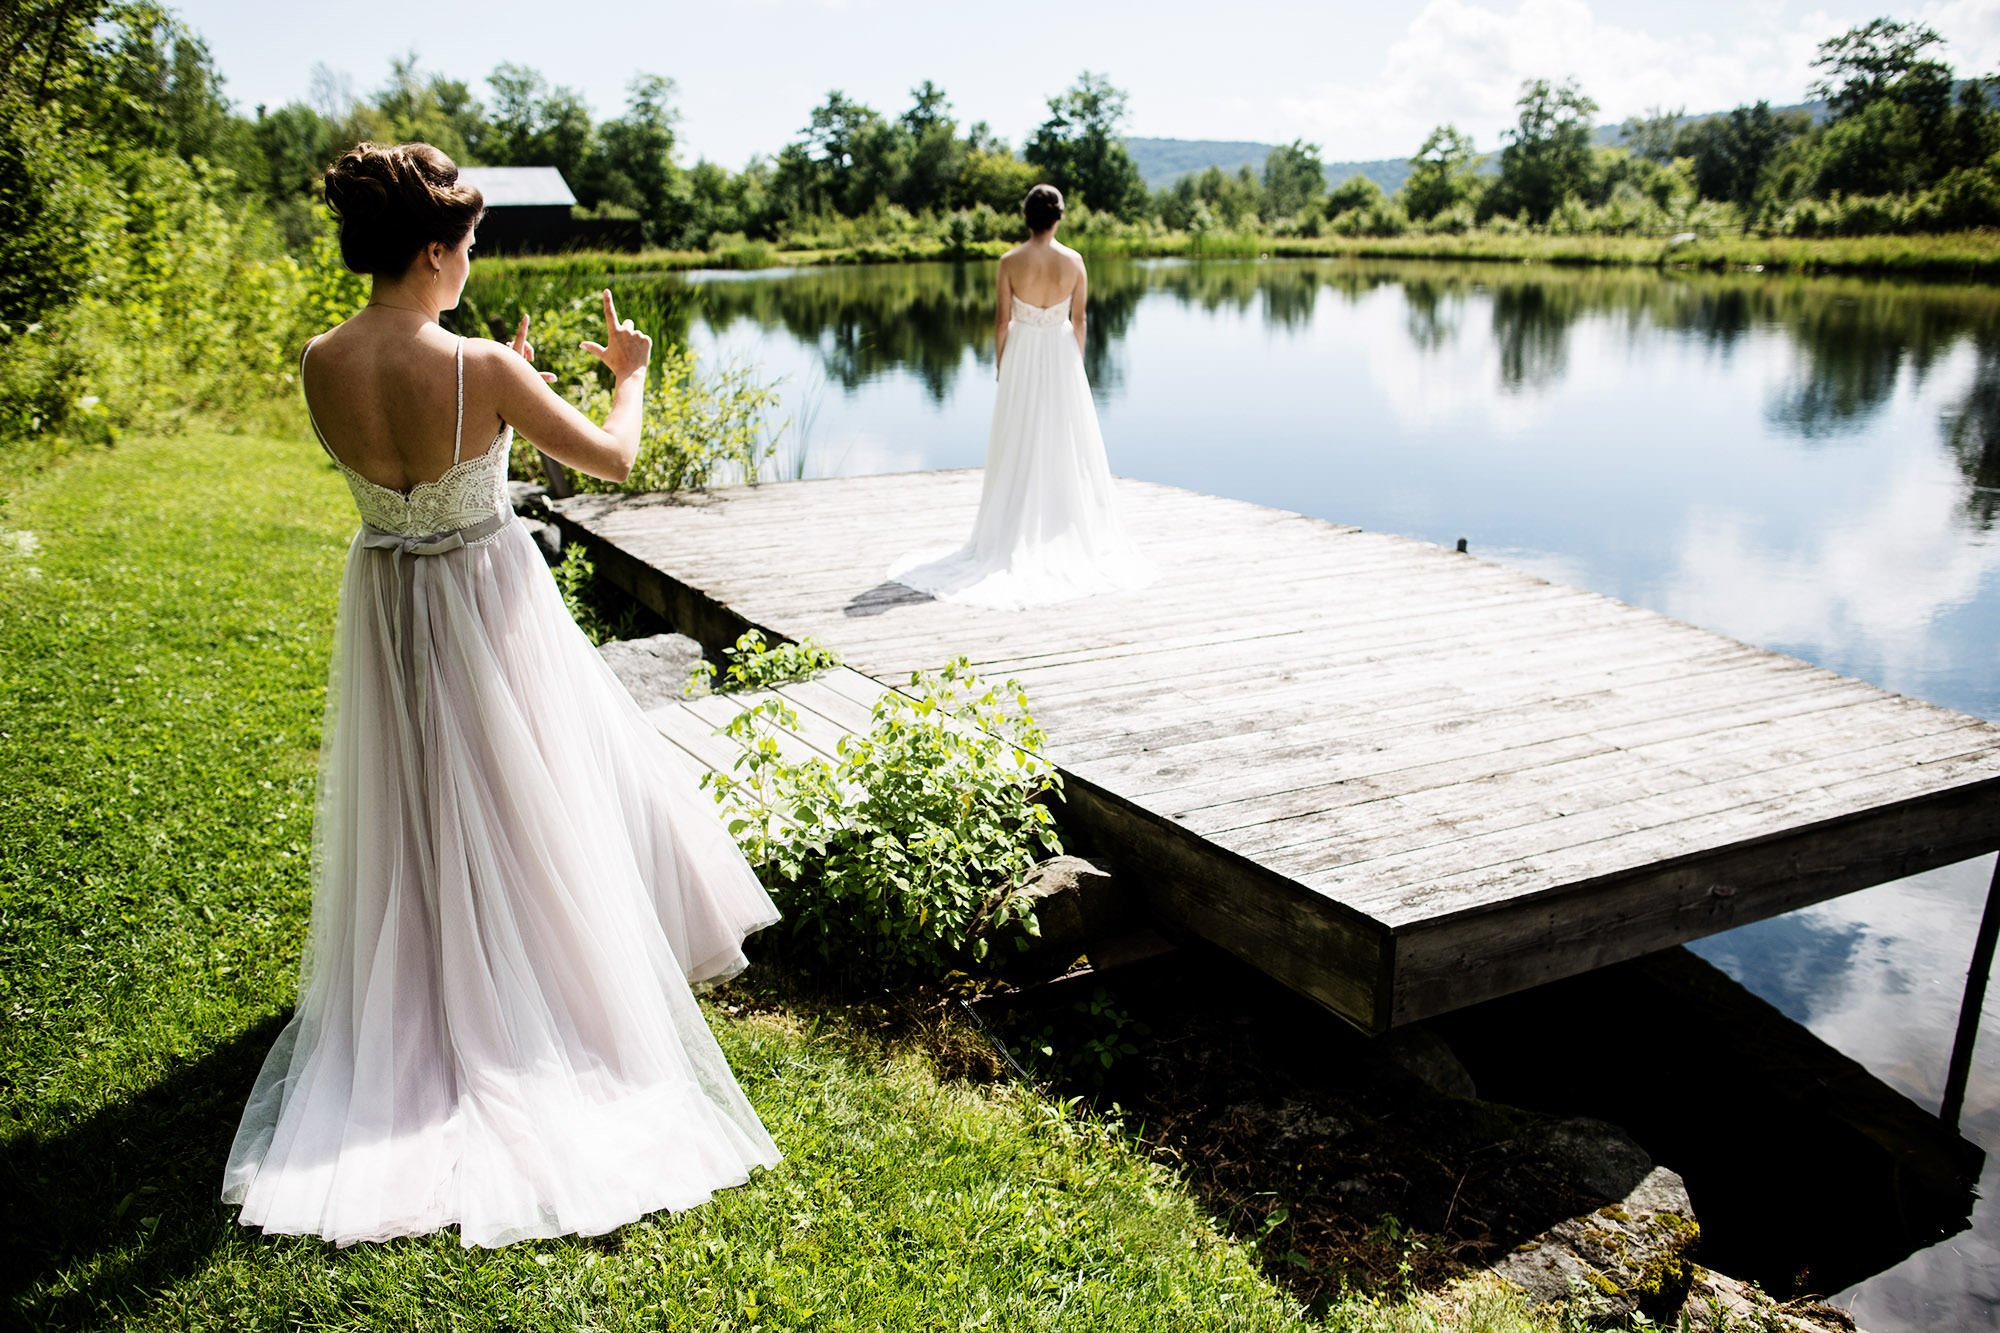 The brides share their first look on the dock of The Ponds at Bolton Valley